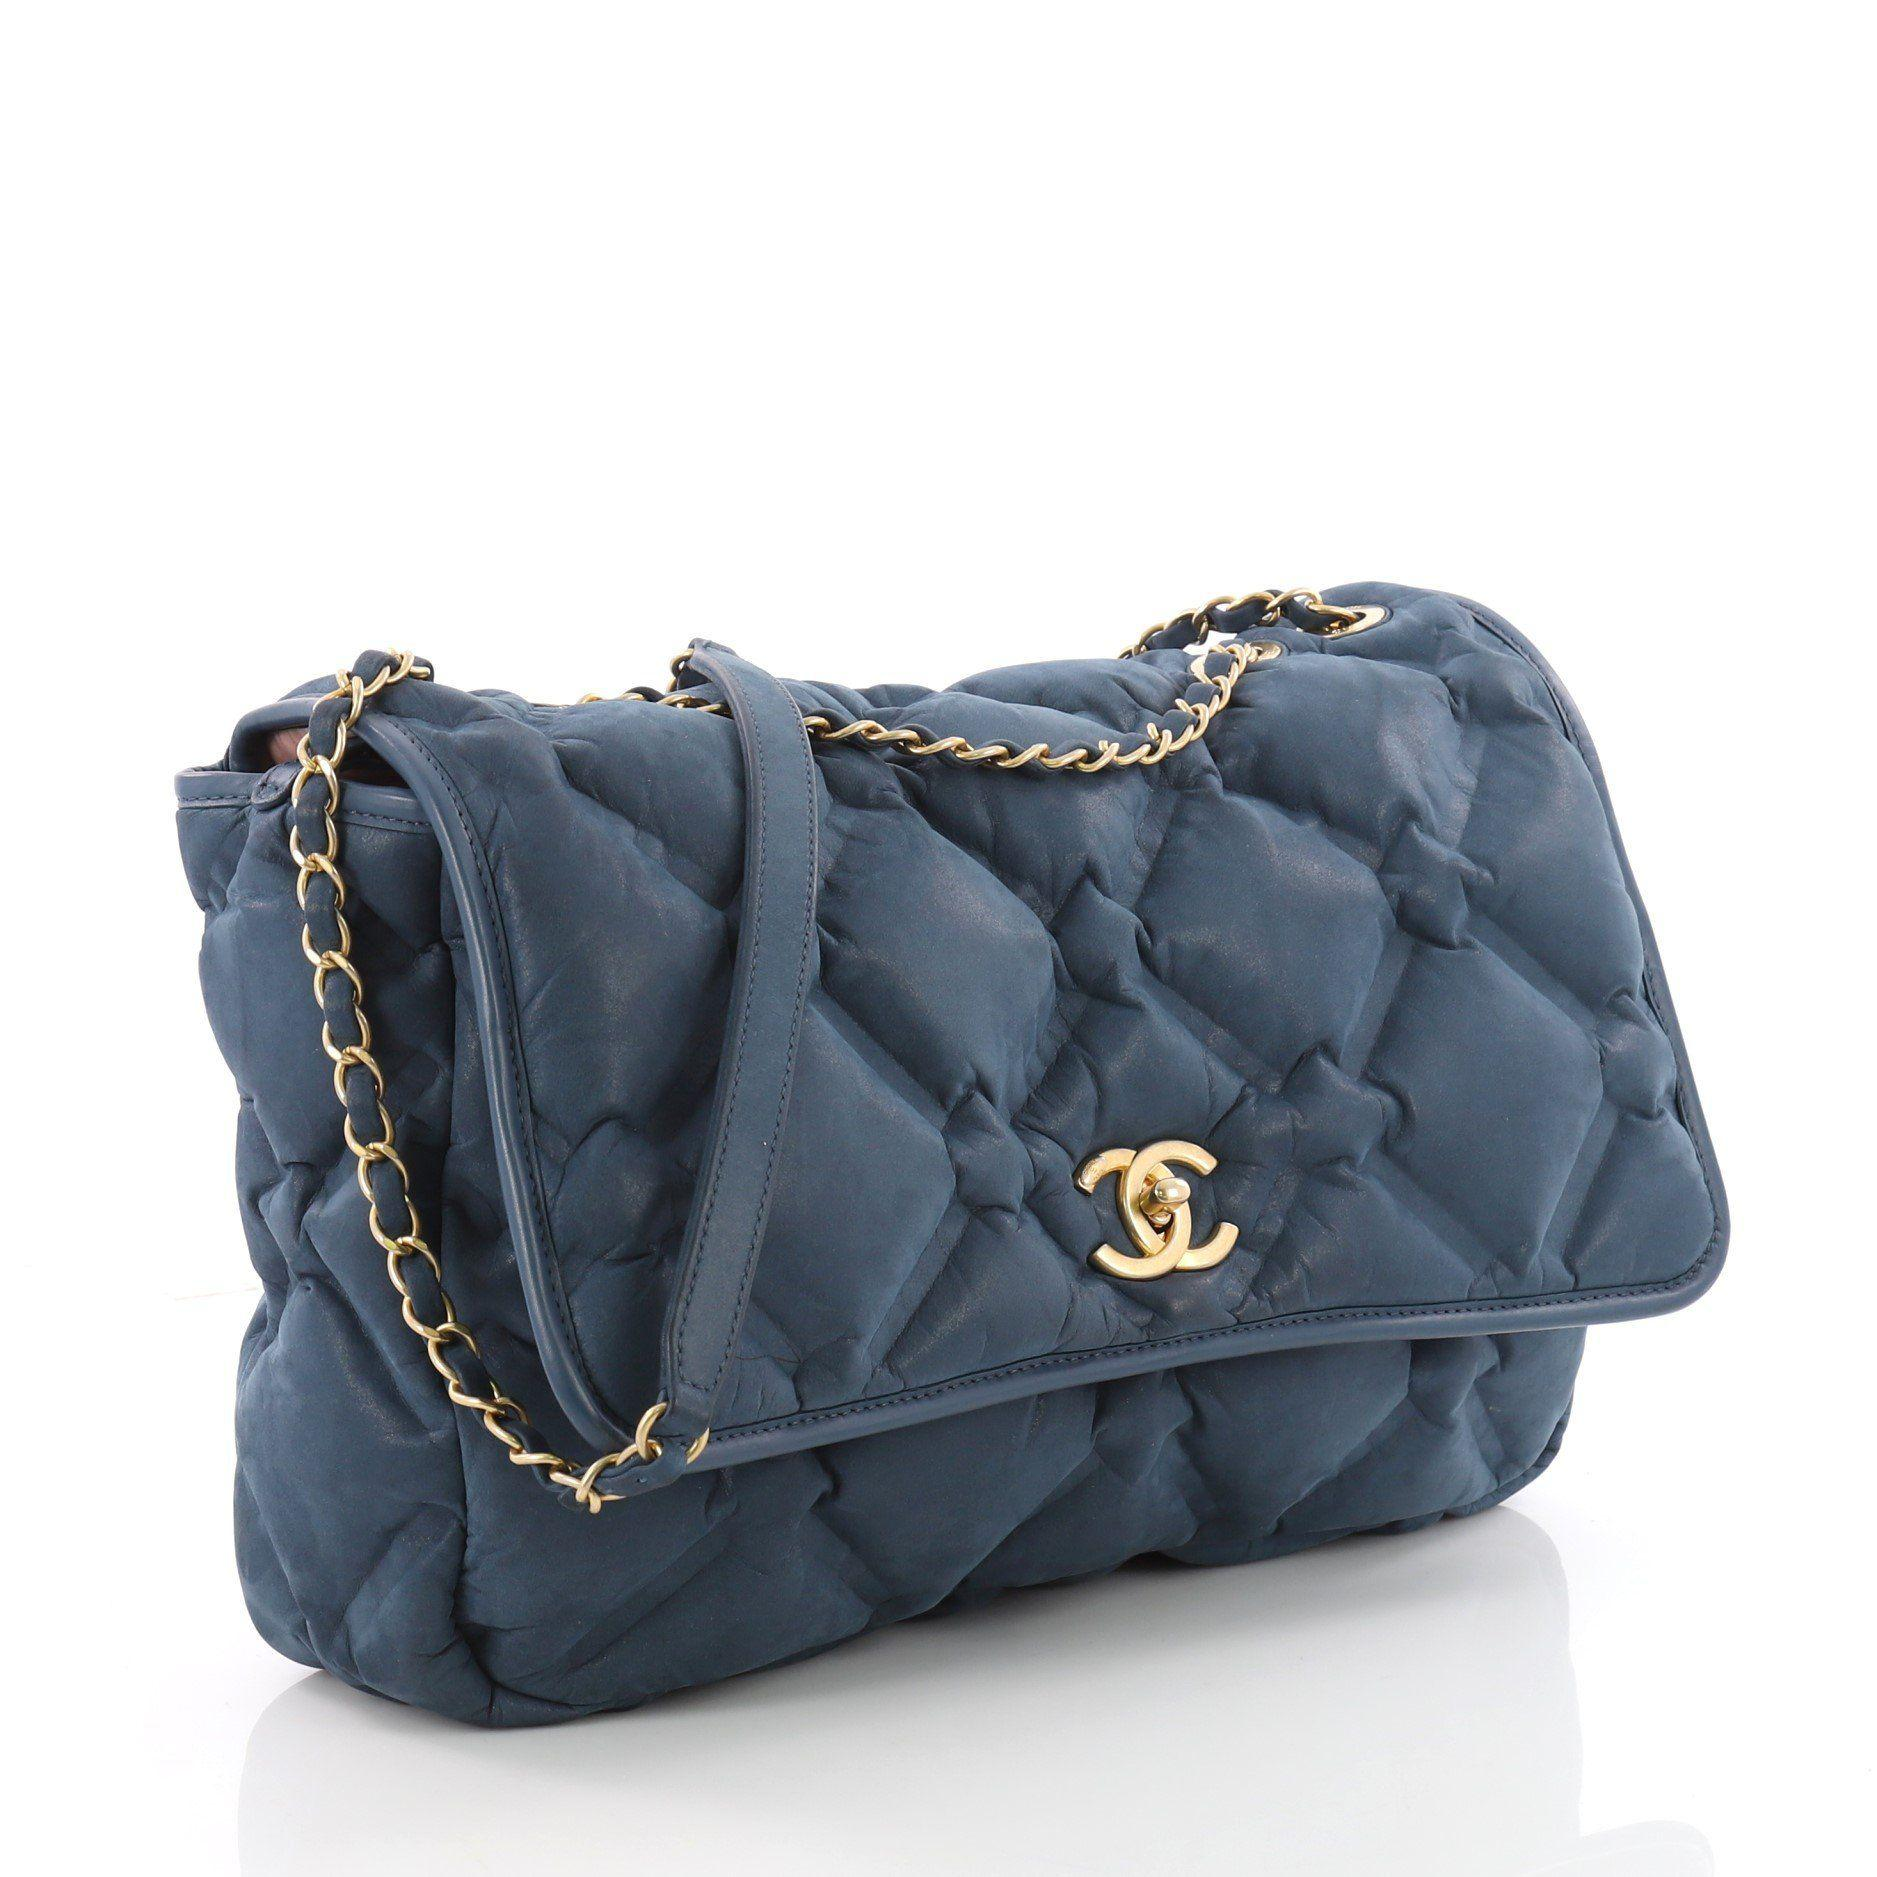 adbc368e125fb7 Chanel - Blue Chesterfield Flap Bag Quilted Calfskin Jumbo - Lyst. View  fullscreen